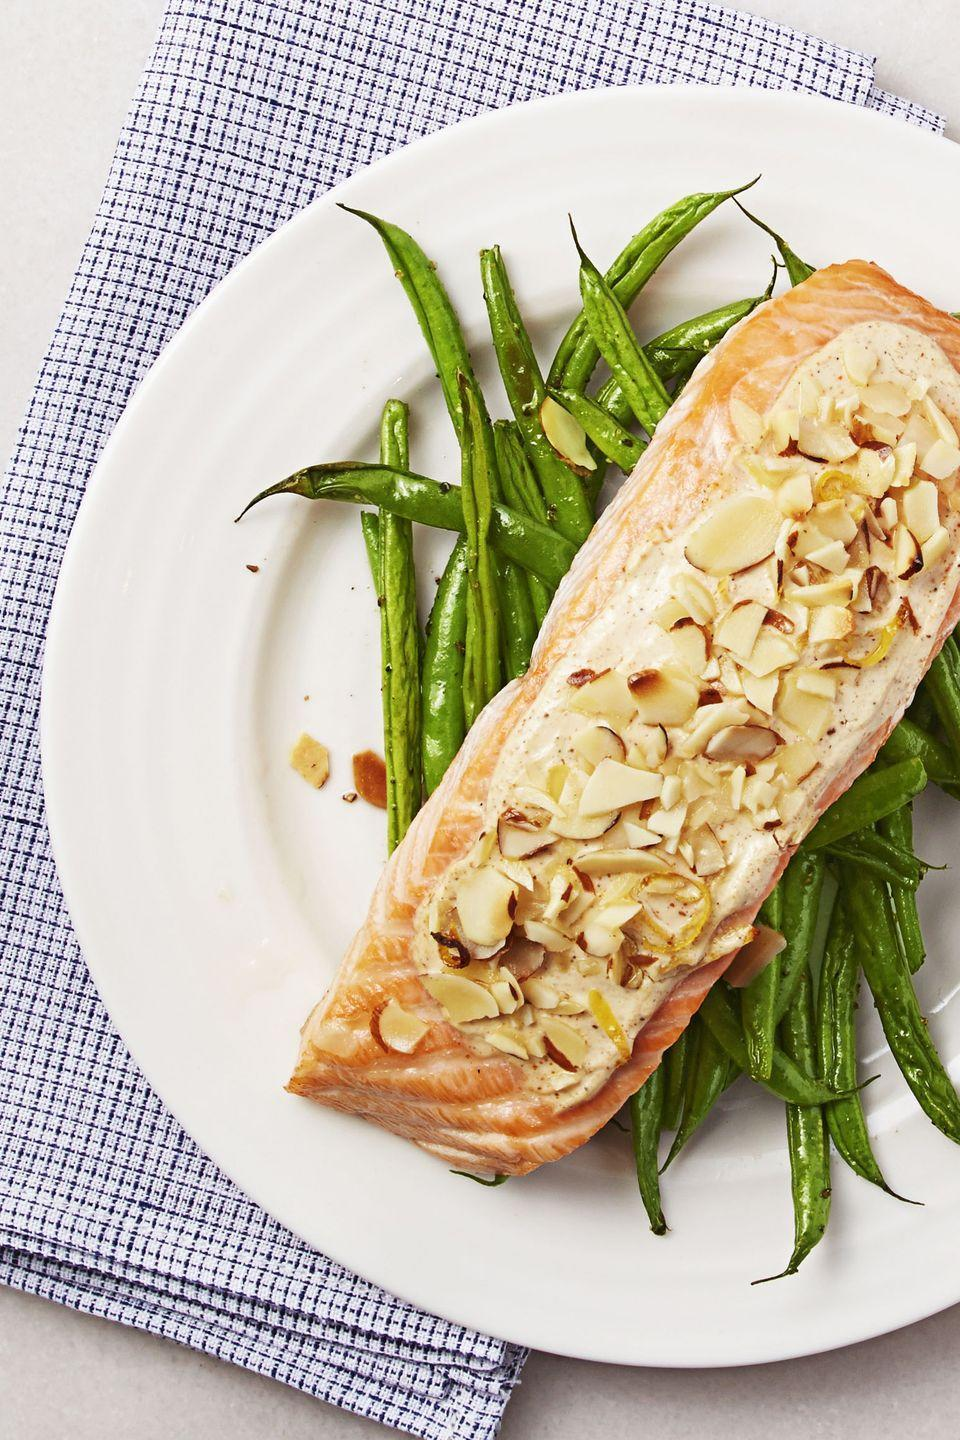 """<p>This delicately plated salmon may look like it requires a ton of prep work, but the reality is that you simply rub it with spices — and let the oven do the rest! A side of green beans can go on the bottom rack.</p><p><em><a href=""""https://www.goodhousekeeping.com/food-products/a32681/almond-crusted-creole-salmon/"""" rel=""""nofollow noopener"""" target=""""_blank"""" data-ylk=""""slk:Get the recipe for Almond-Crusted Creole Salmon »"""" class=""""link rapid-noclick-resp"""">Get the recipe for Almond-Crusted Creole Salmon »</a></em></p>"""